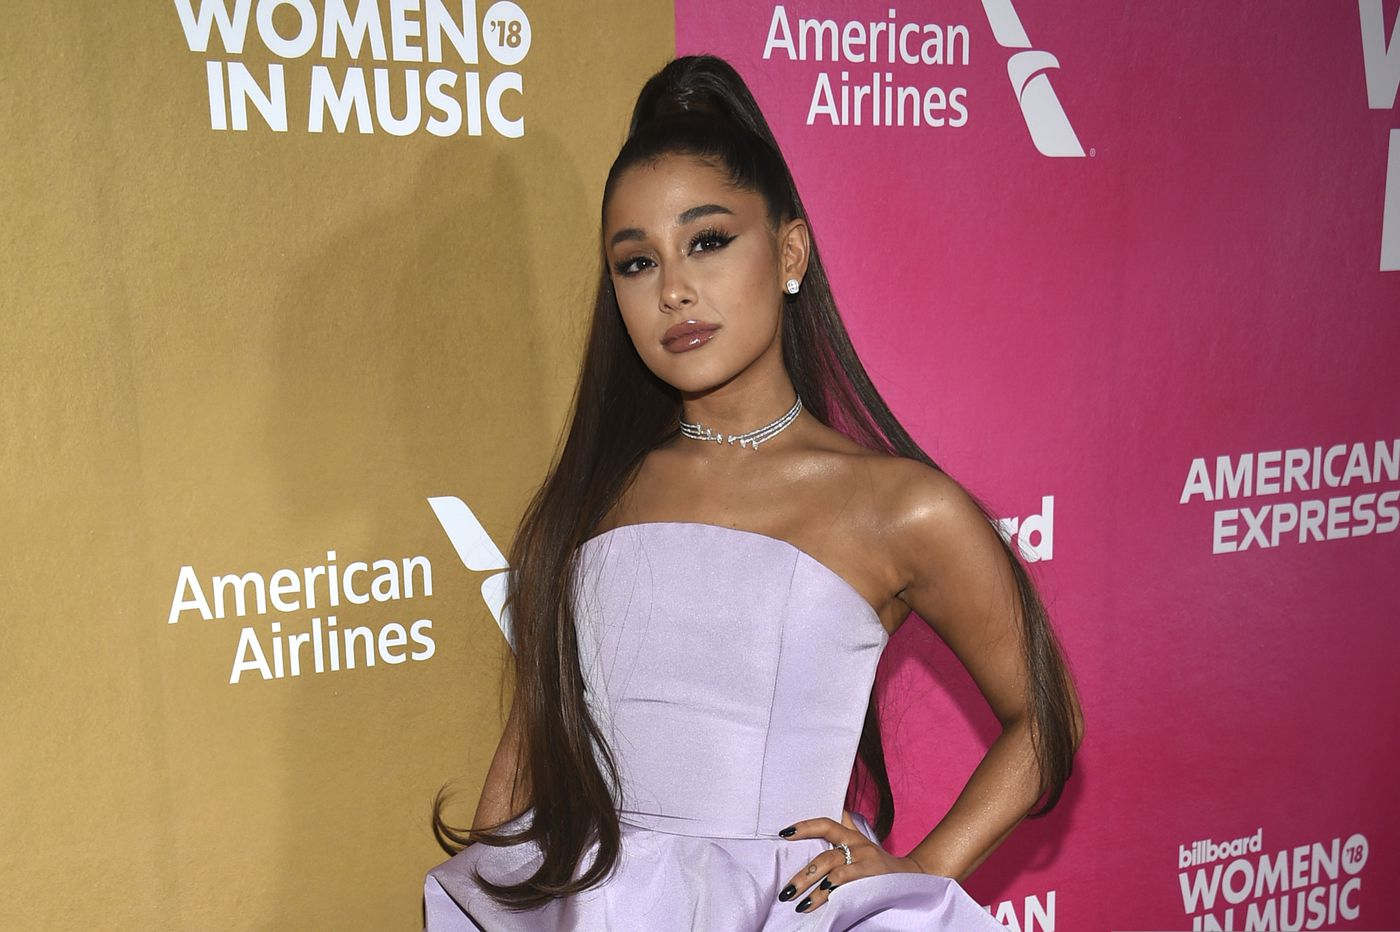 Ariana Grande tells fans she's struggling with an illness